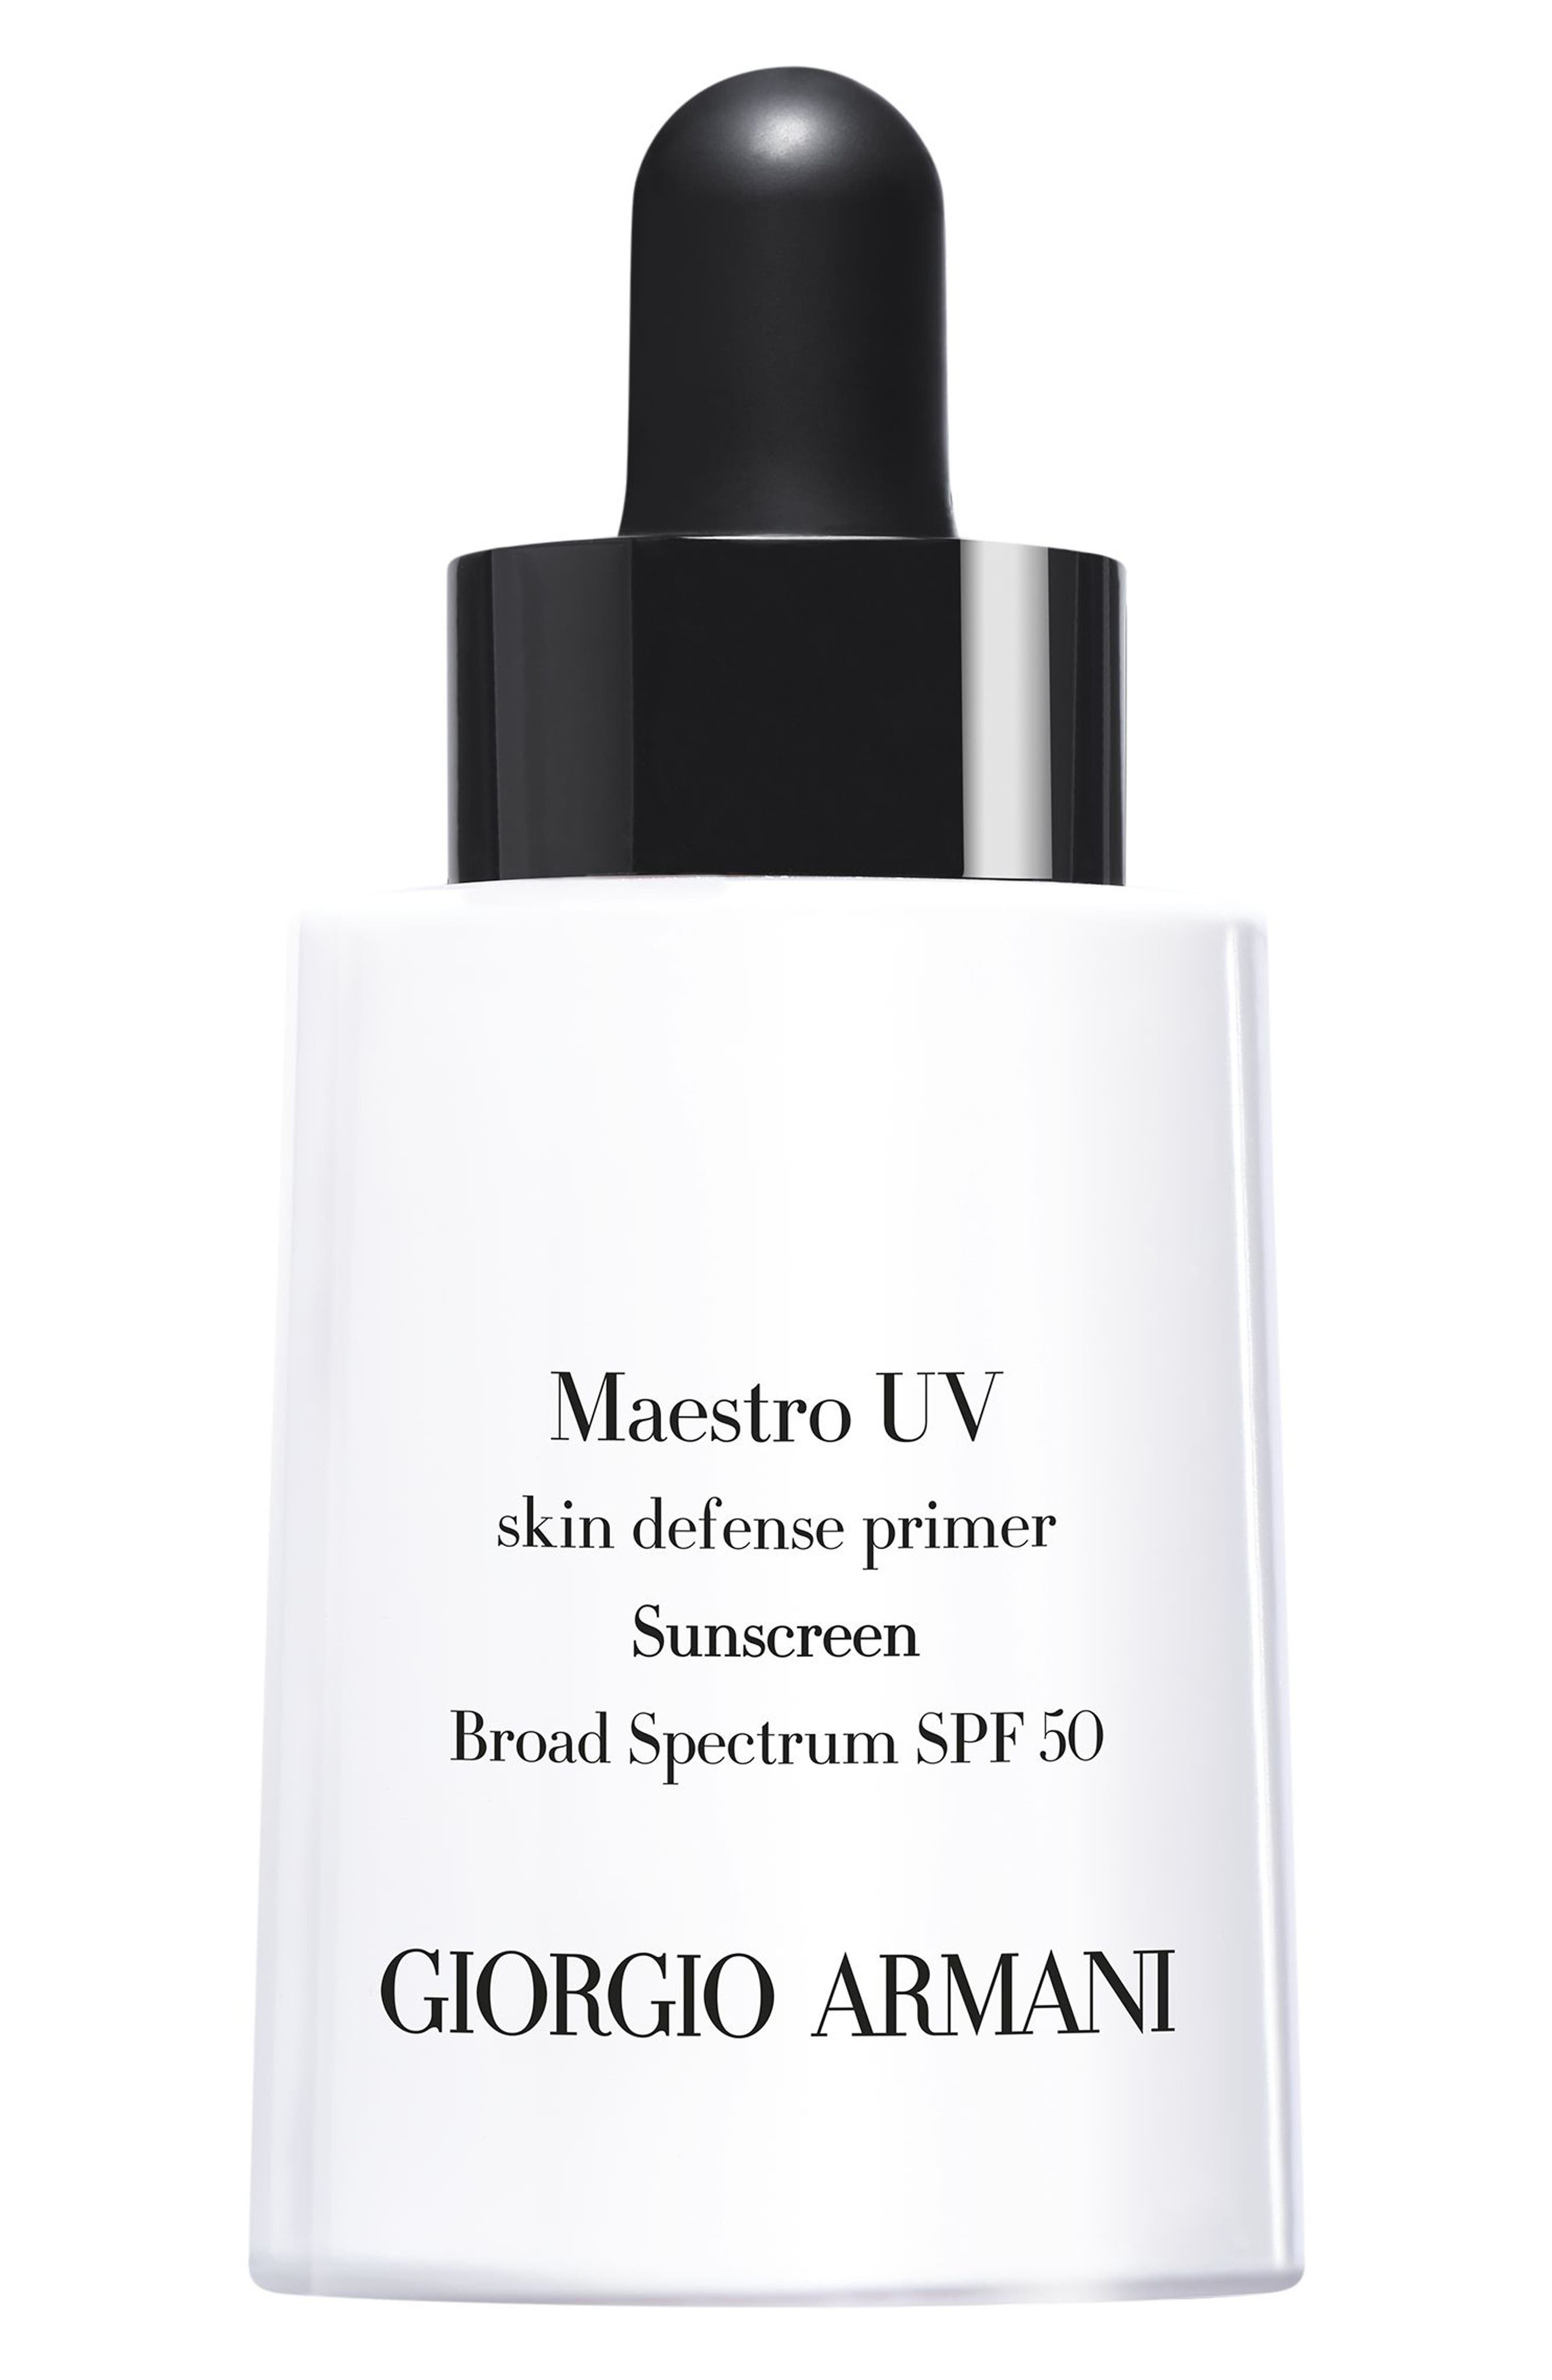 GIORGIO ARMANI, Maestro UV Skin Defense Primer Sunscreen SPF 50, Main thumbnail 1, color, NO COLOR